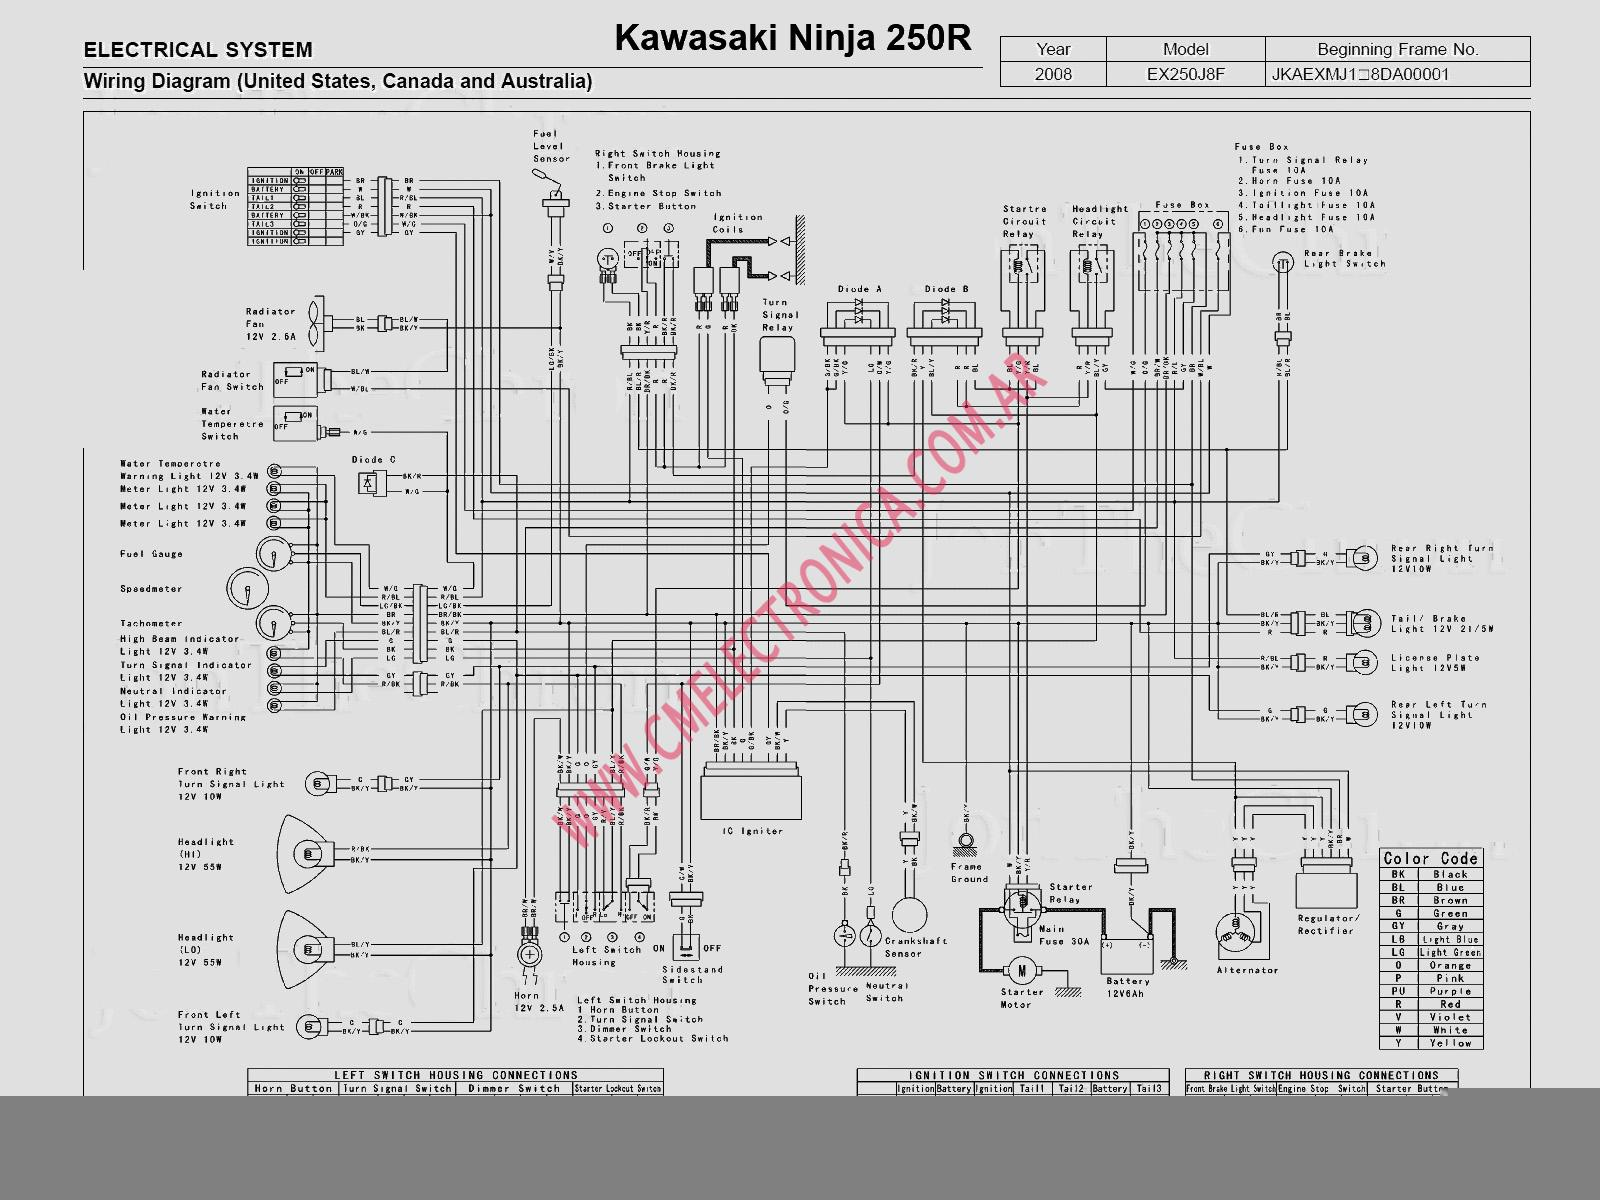 hight resolution of ignition wiring diagram on kawasaki ninja 250 ignition wiring kawasaki ninja 250 engine kawasaki ninja 250 ignition switch wiring diagram